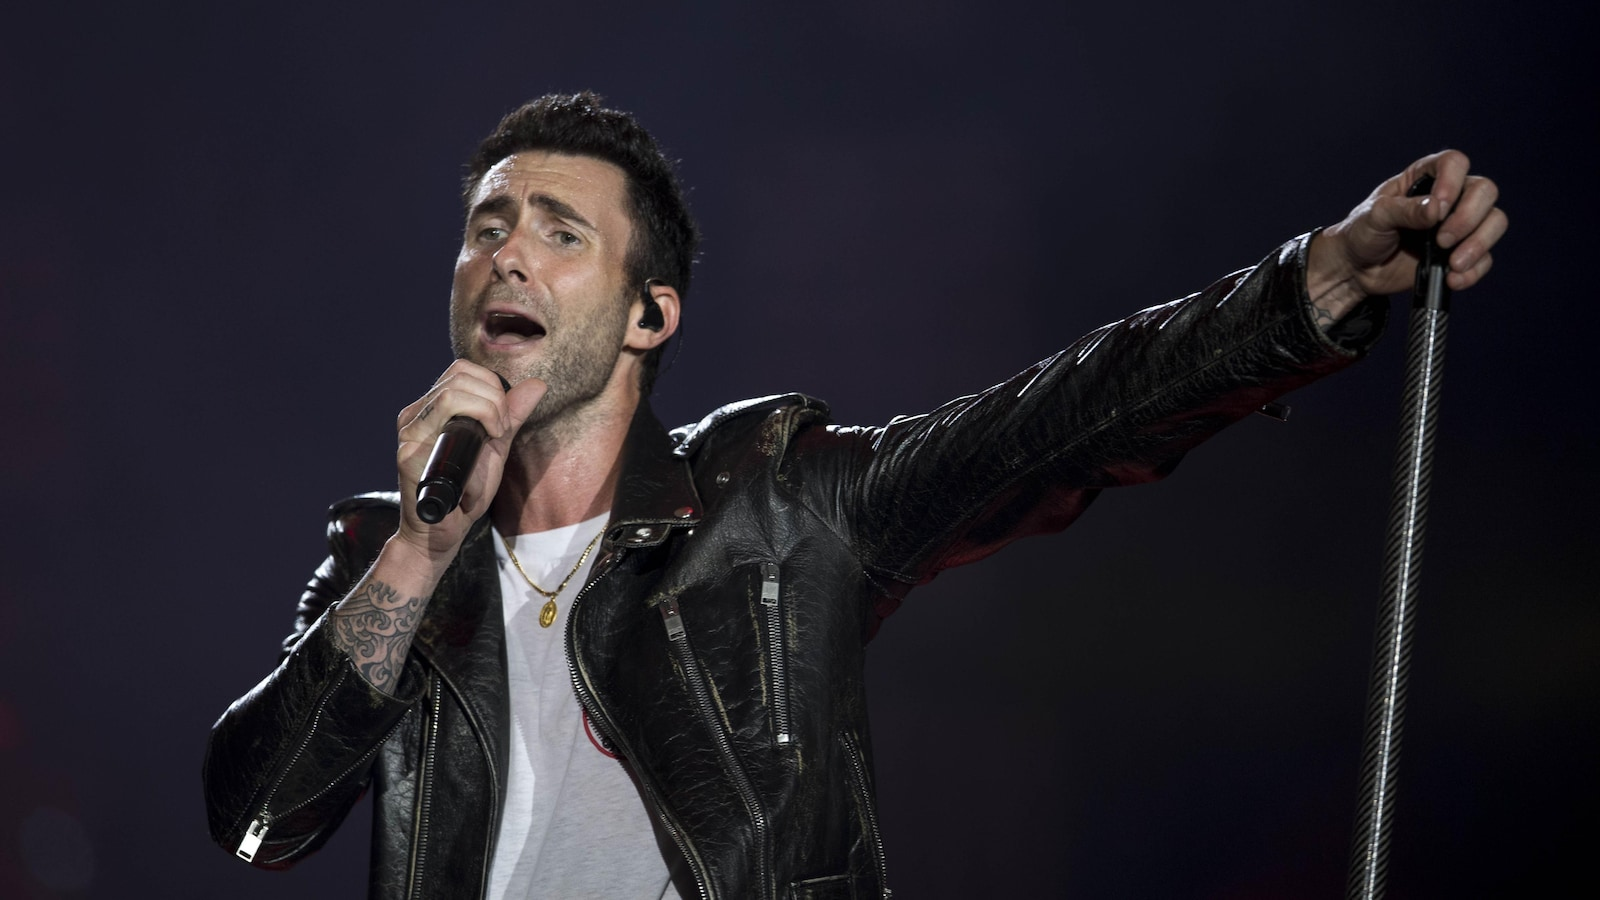 Maroon 5 assurera le spectacle de la mi-temps du Super Bowl